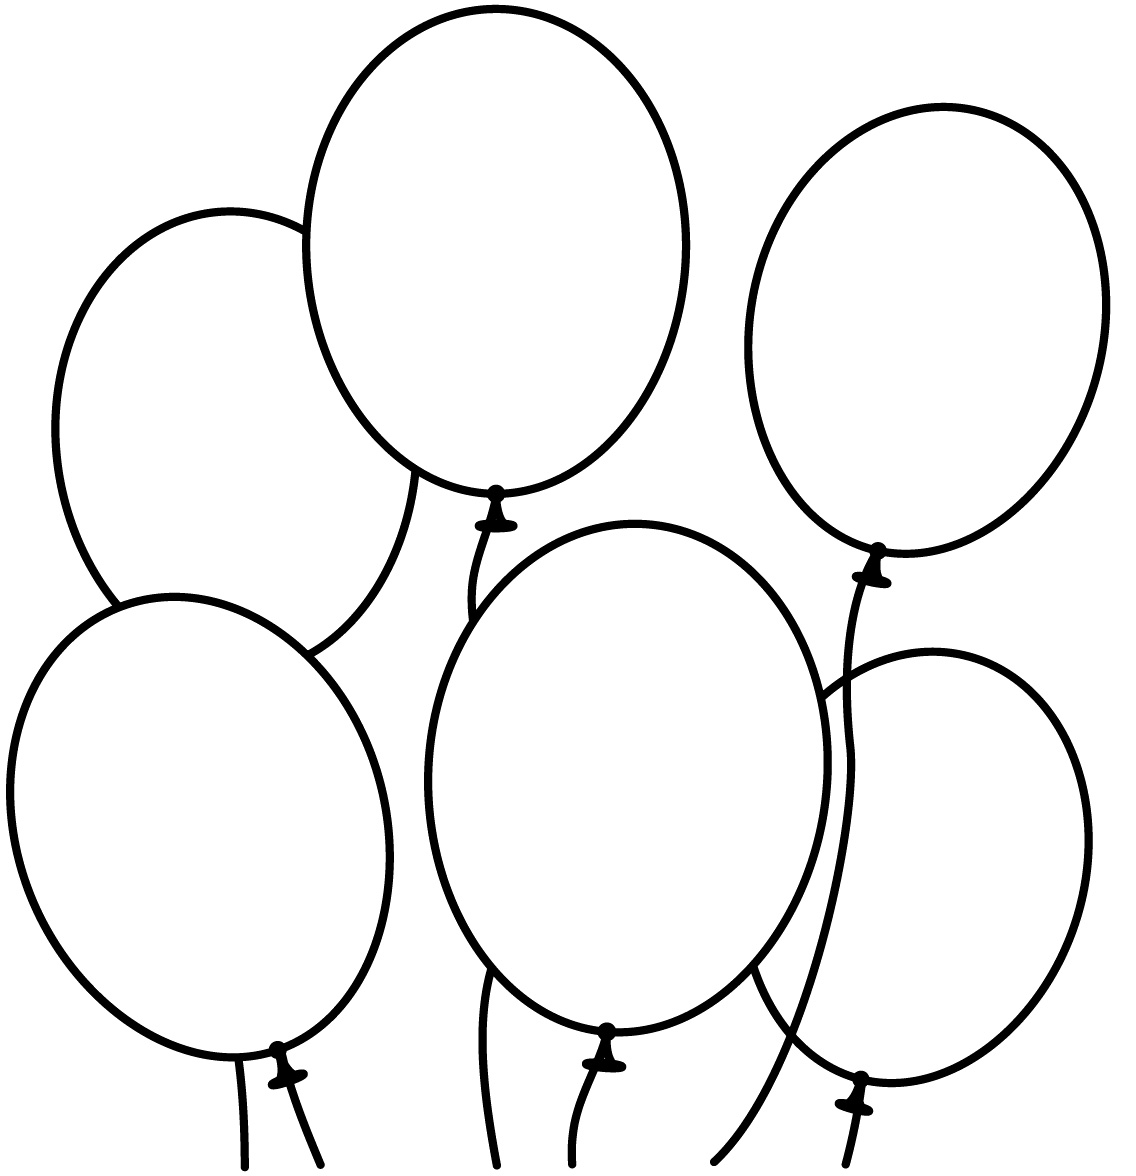 balloons to color free colouring sheets balloons clipart best to color balloons